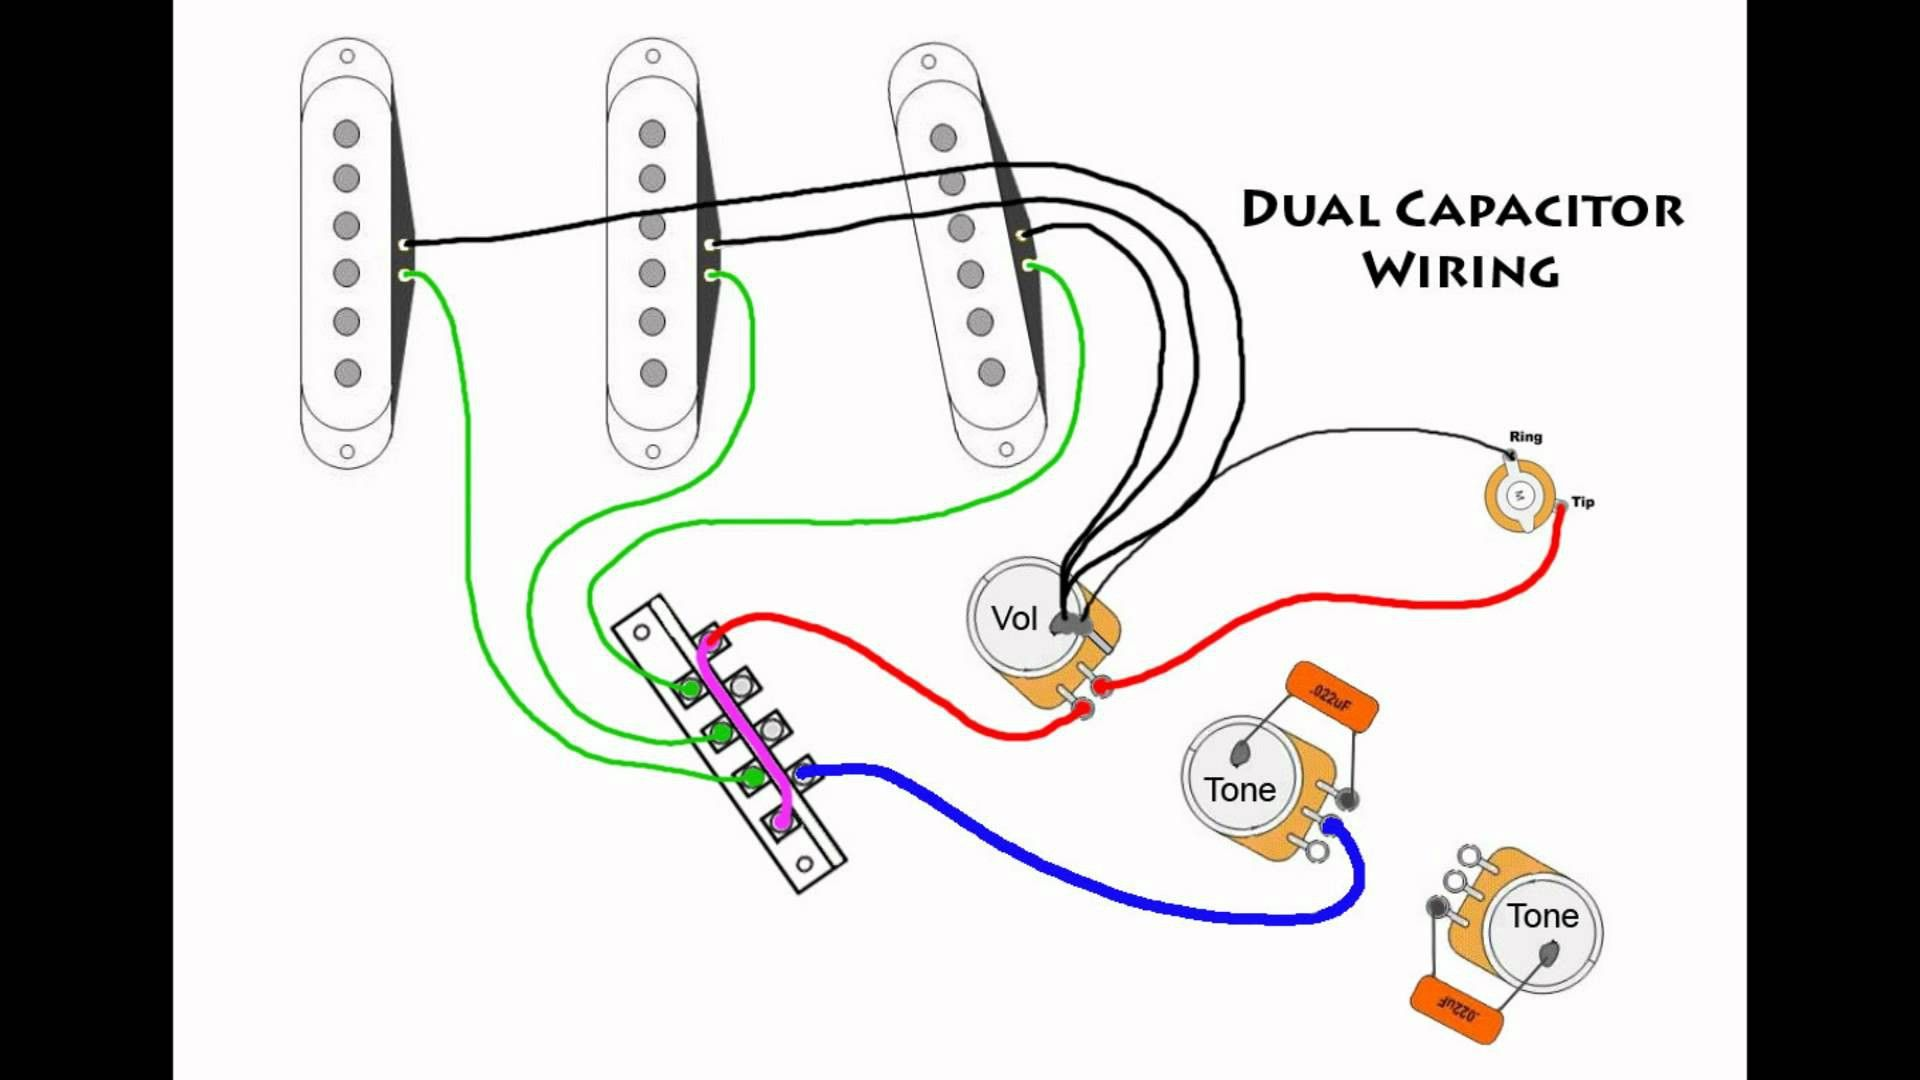 fender stratocaster wiring diagram best of strat throughout diagrams [ 1920 x 1080 Pixel ]